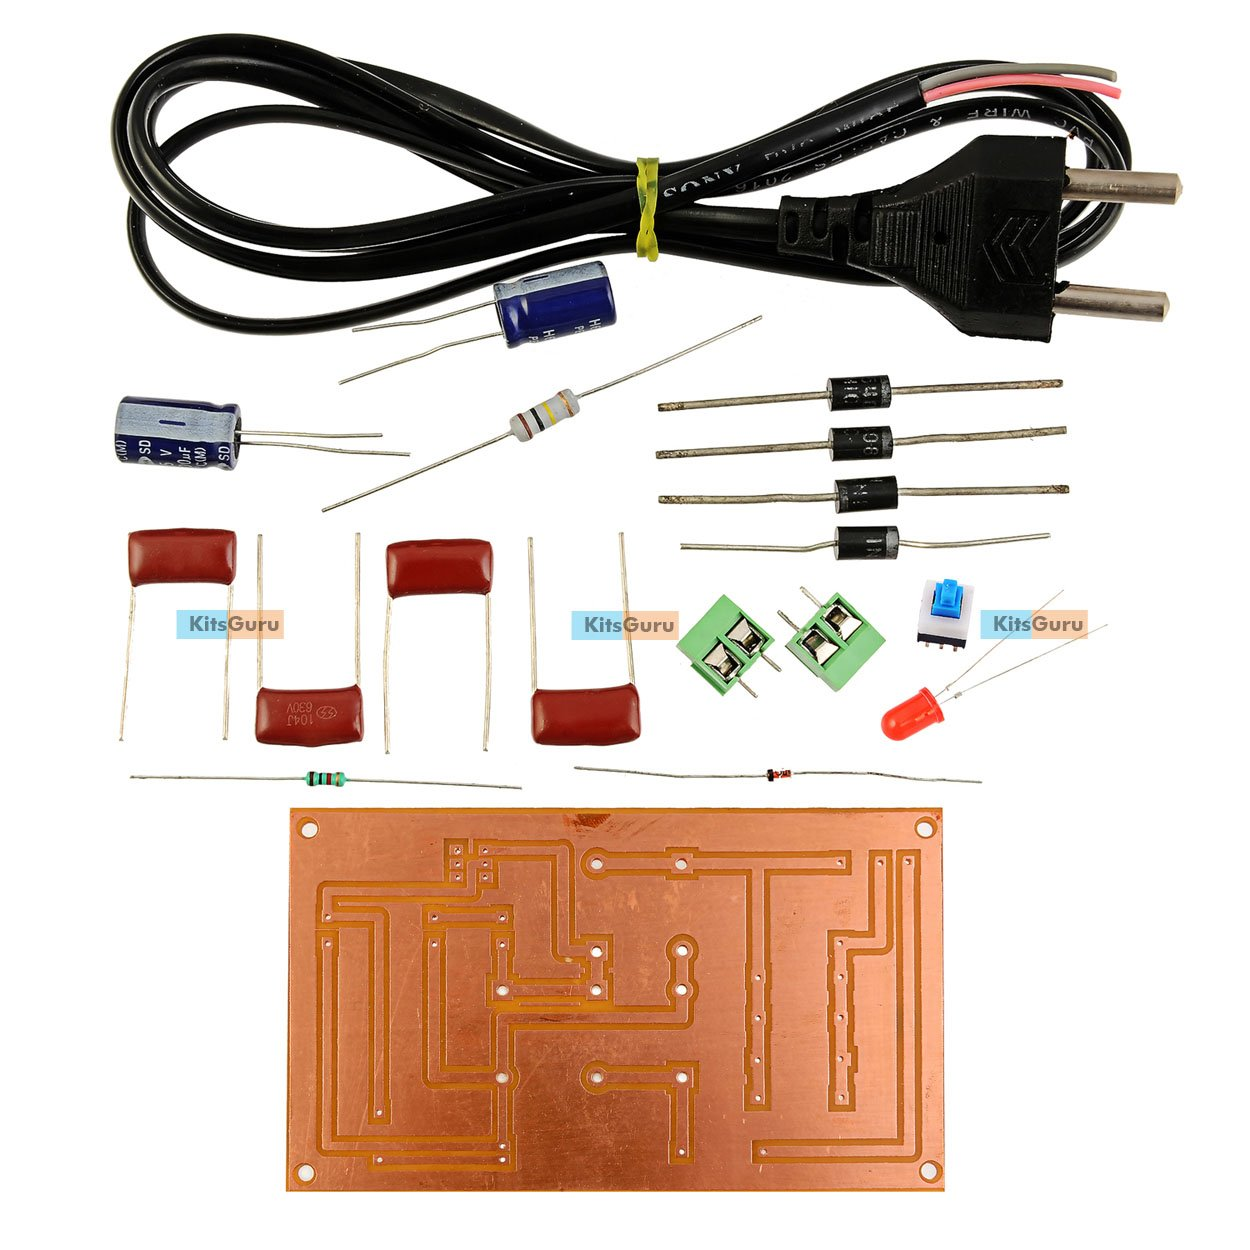 Diy Kit Transformerless Power Supply Lgkt113 Digital Circuits Circuit Homemade Projects